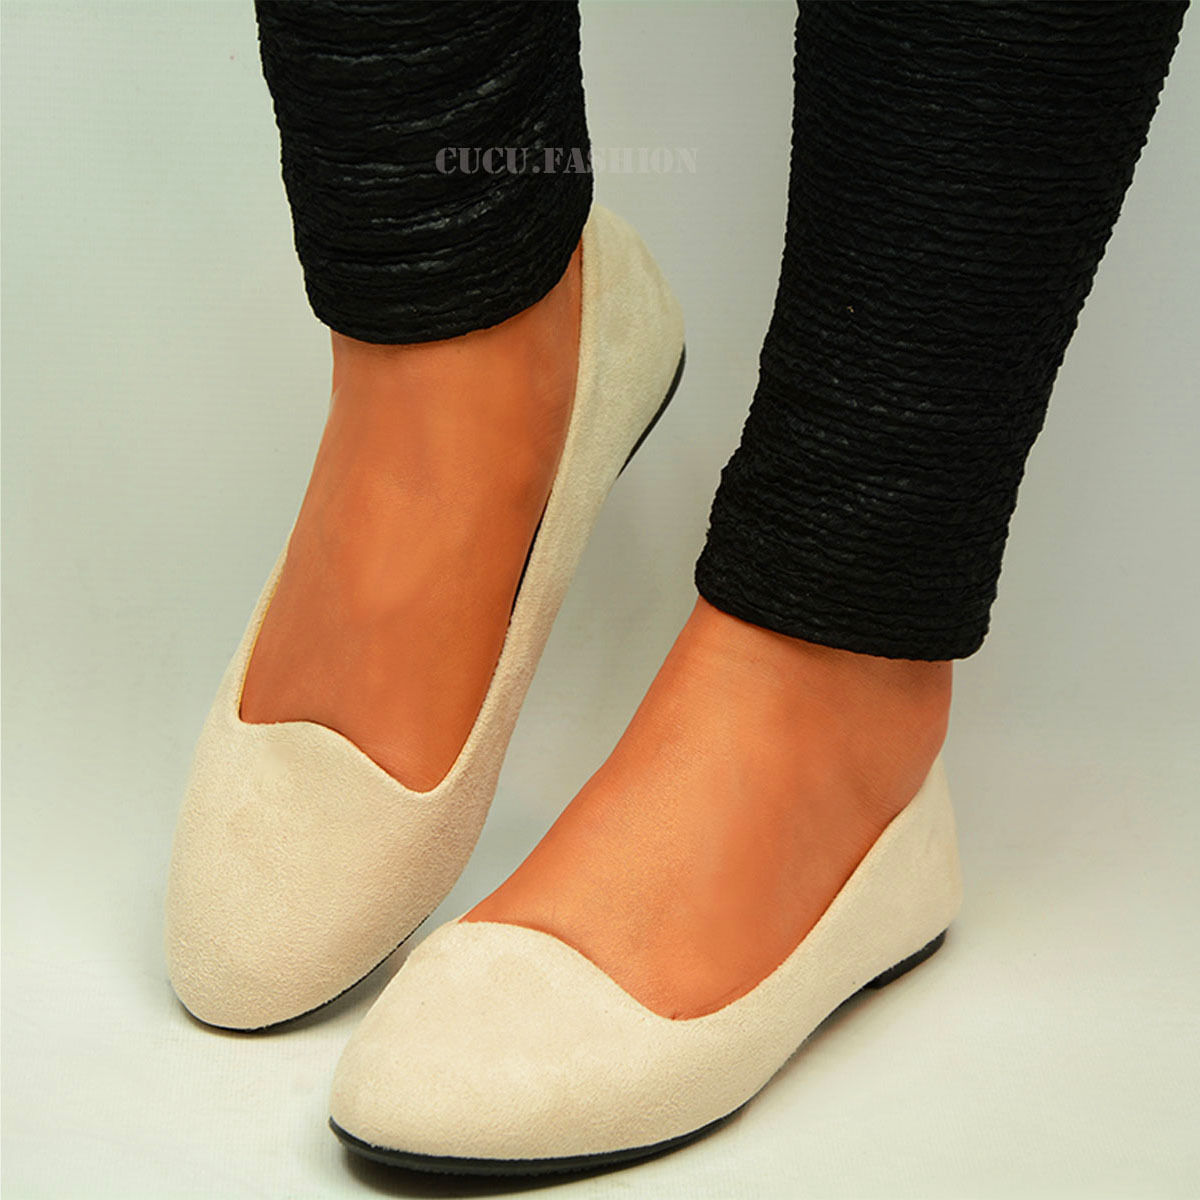 Womens-Ballerina-Ballet-Dolly-Pumps-Ladies-Flat-Black-Loafers-Shoes-Size-New-Uk thumbnail 11